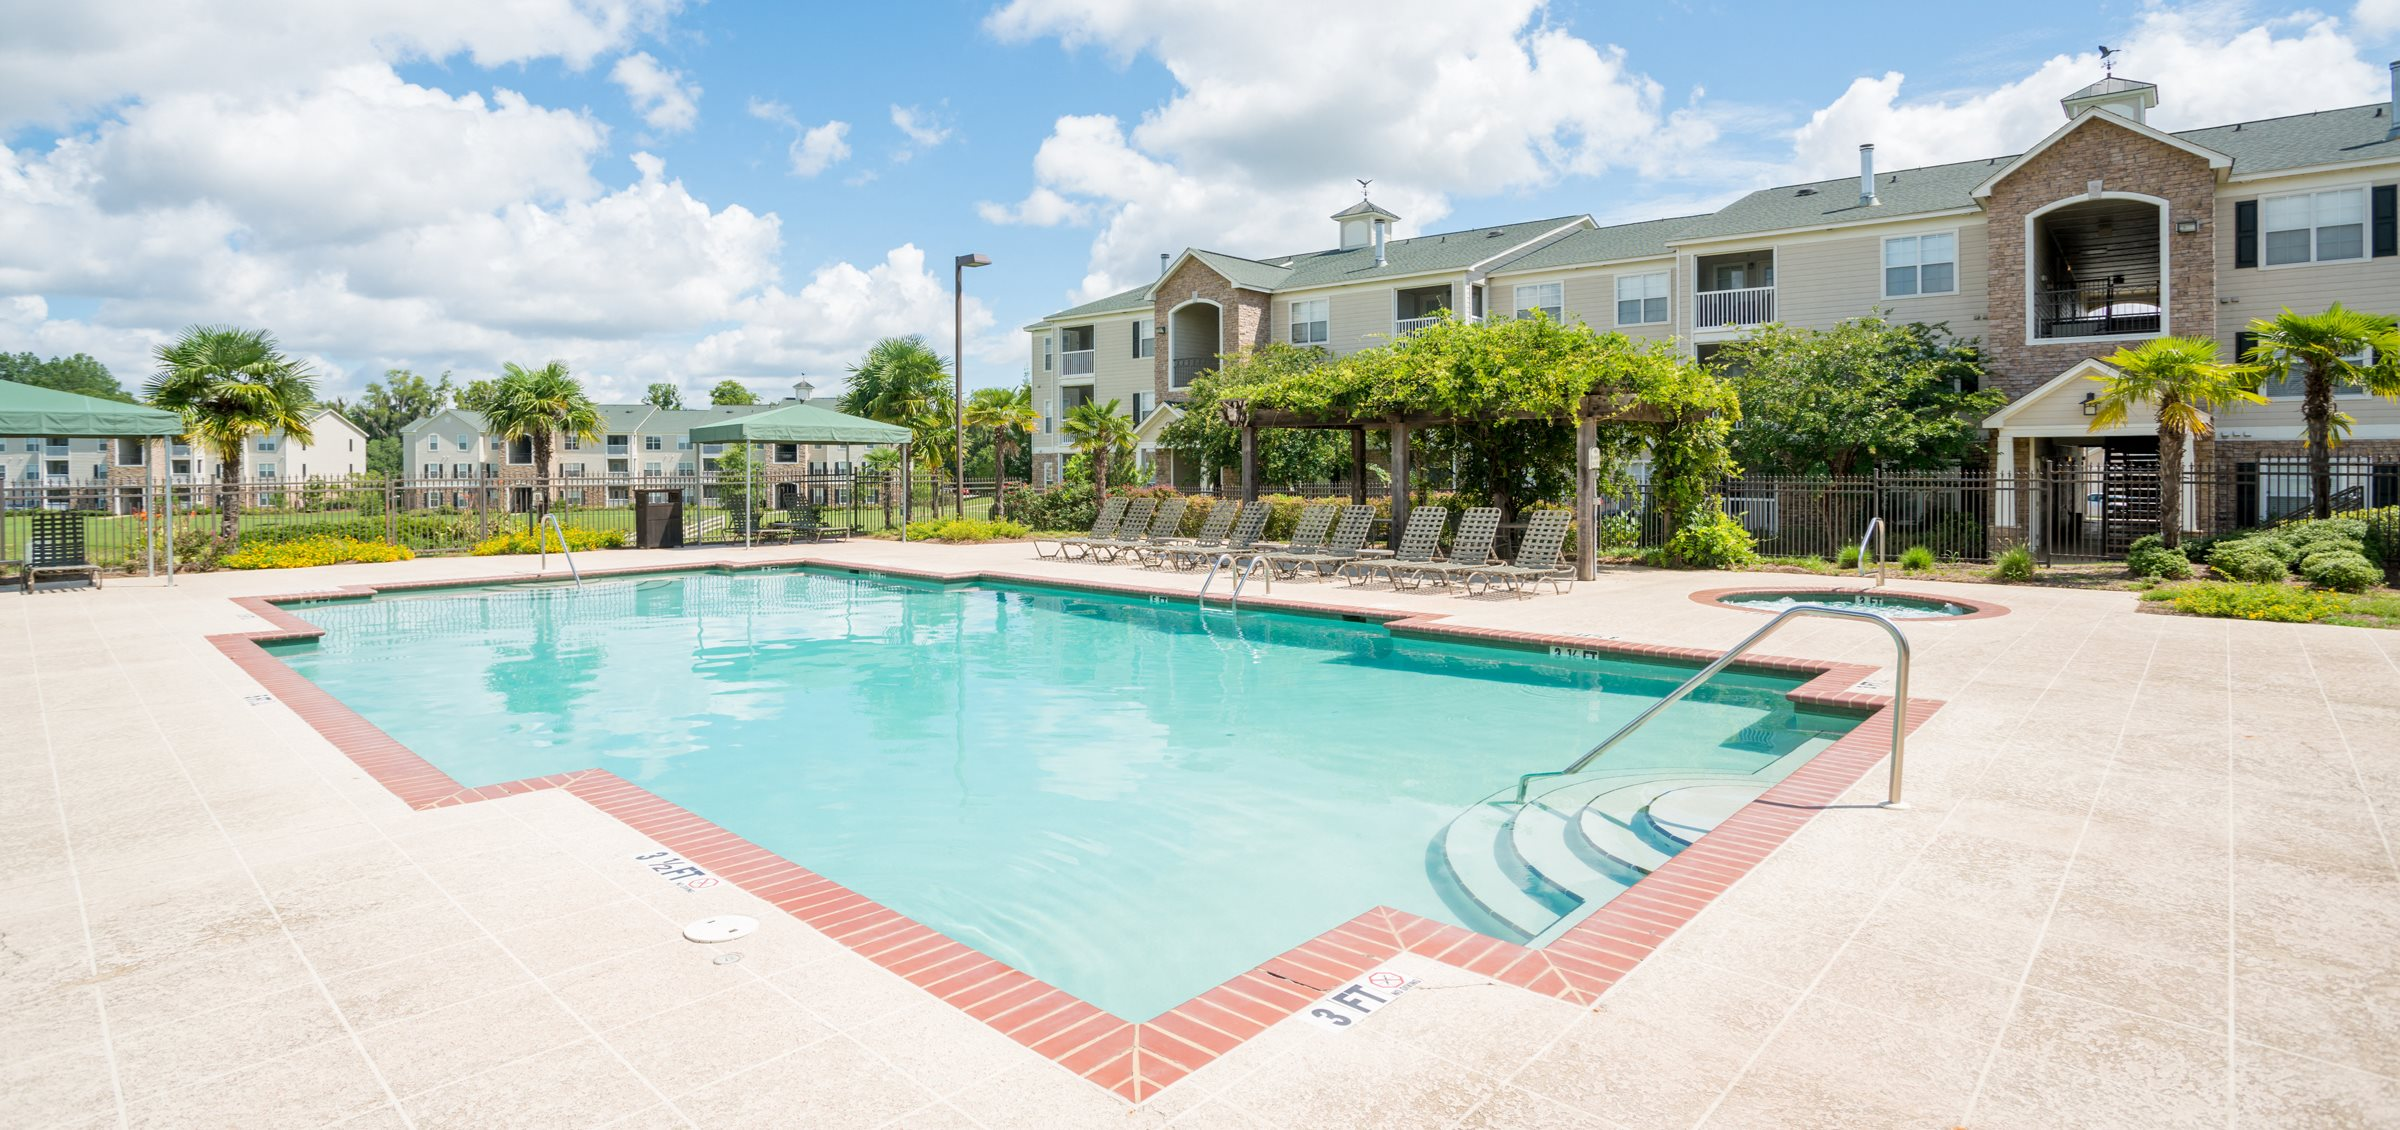 Swimming Pool at Verandas at Taylor Oaks Apartments in Montgomery, AL